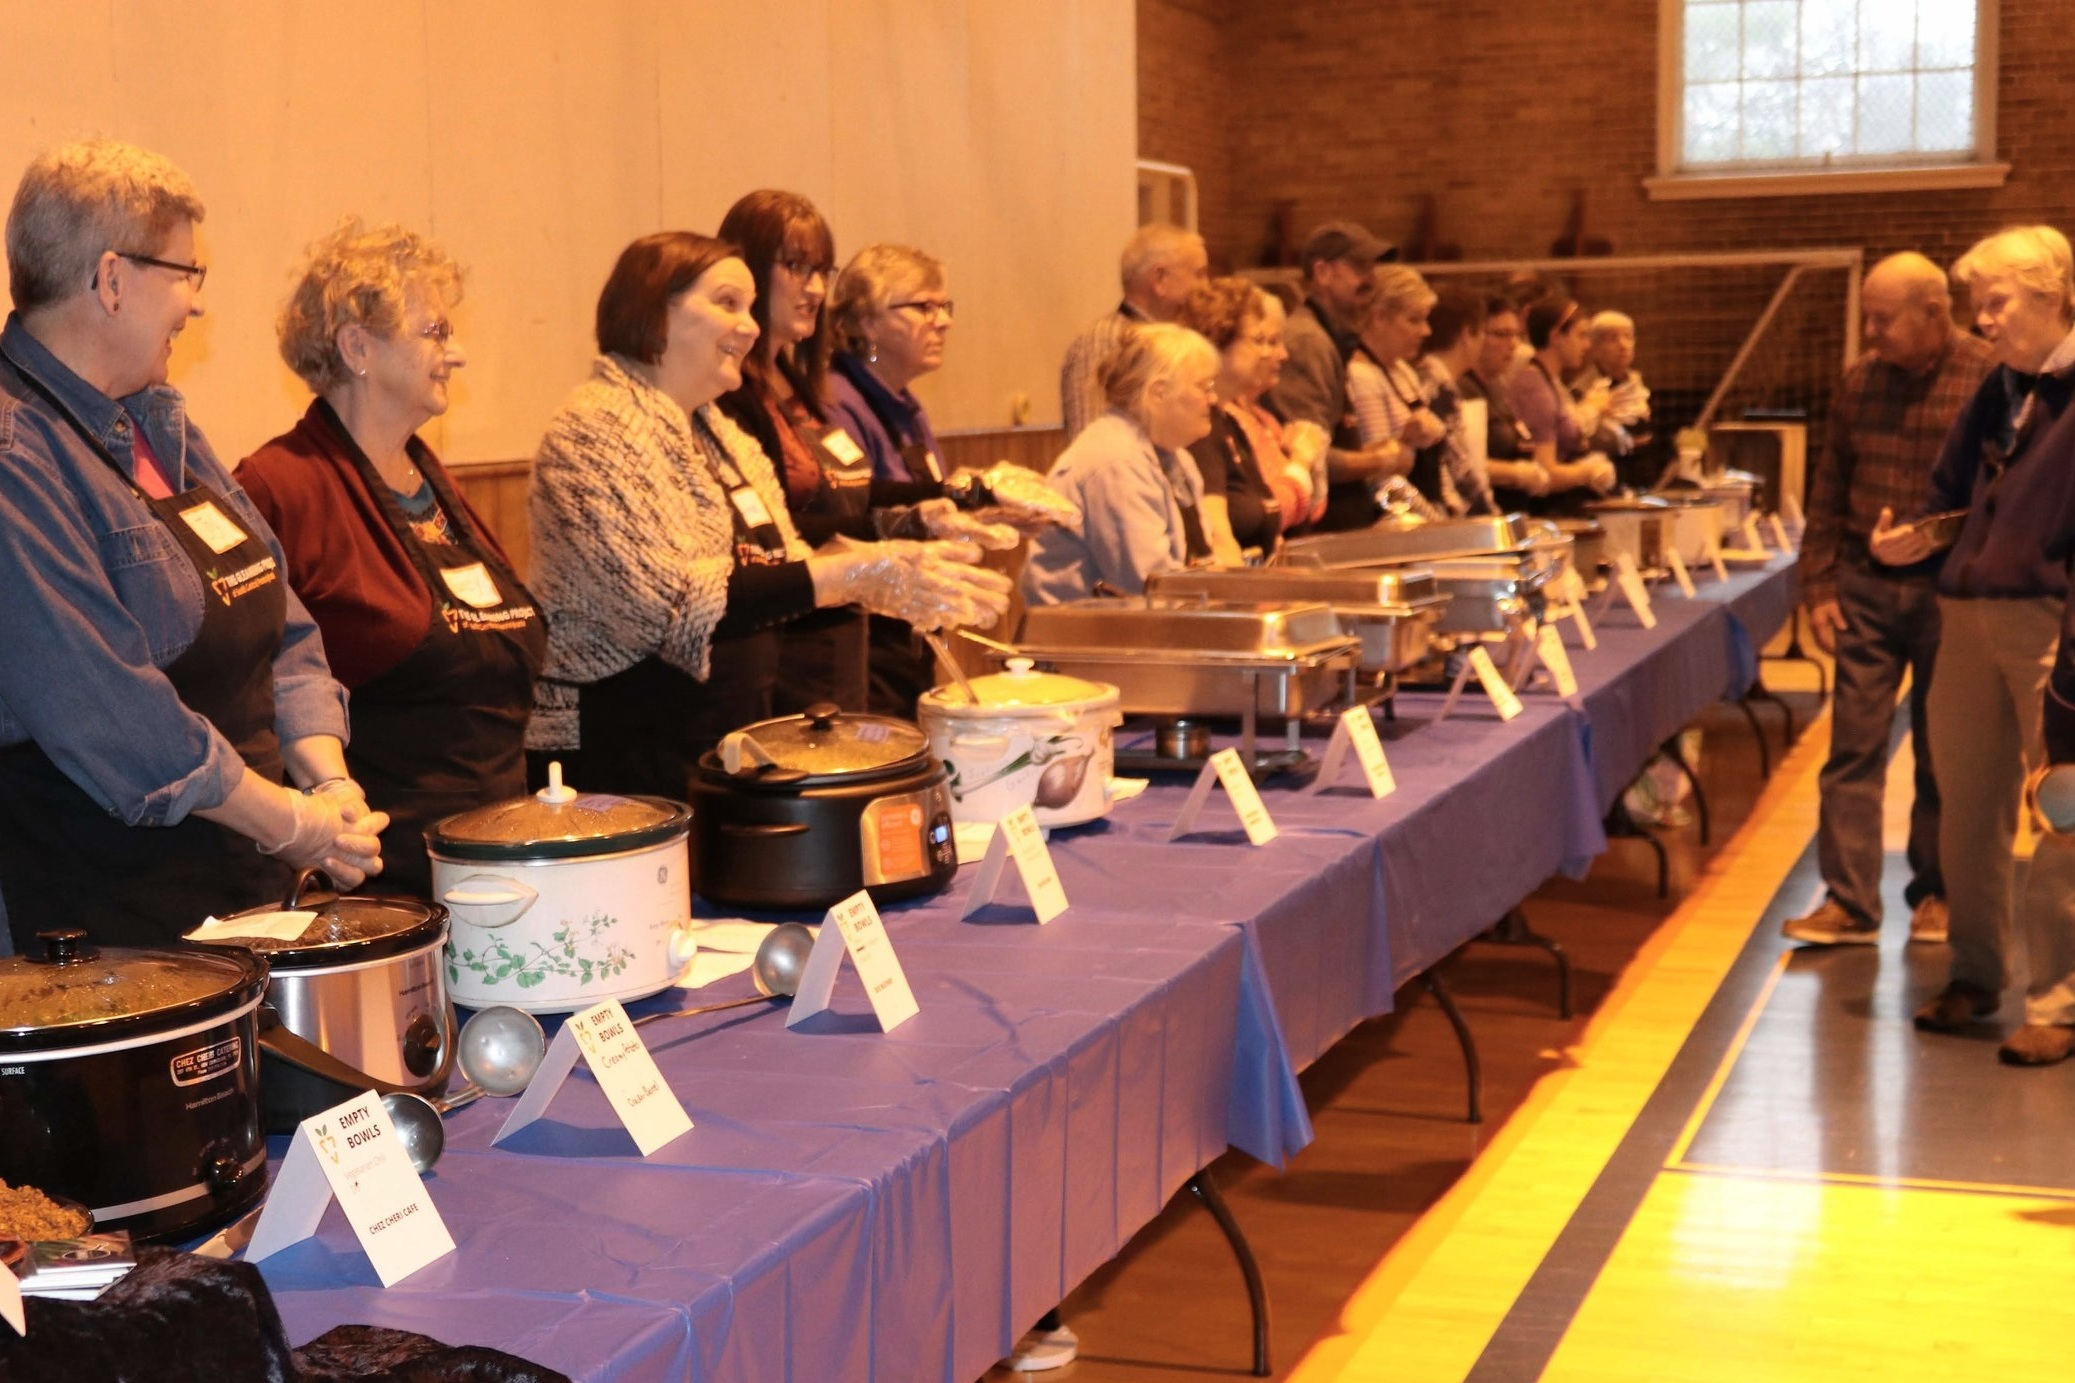 Soup servers ready to begin!